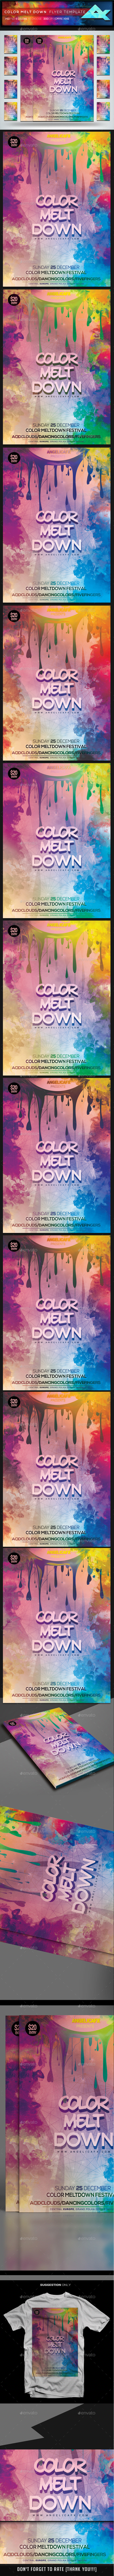 Color Melt Down Festival Flyer Template - Flyers Print Templates